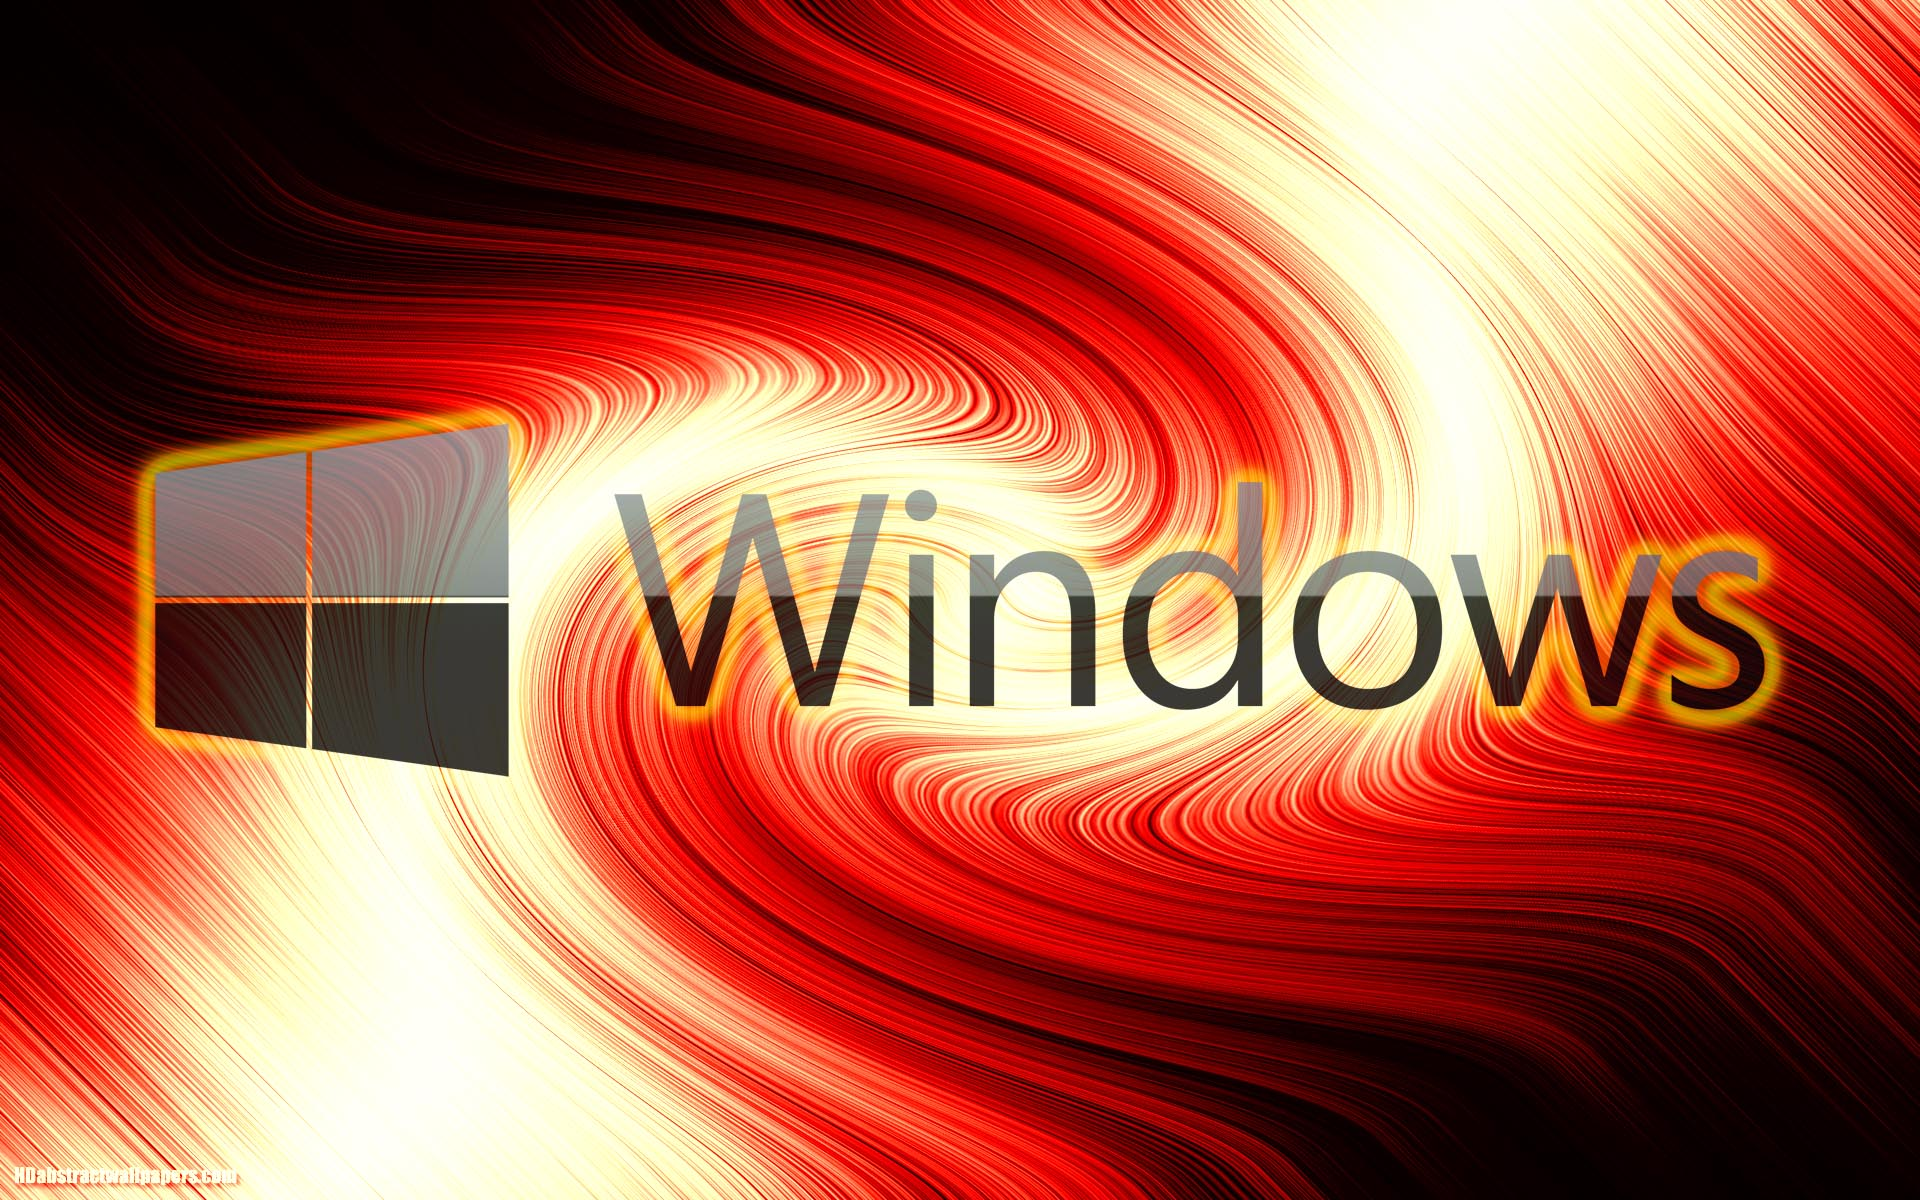 tag abstract windows wallpapers - photo #24